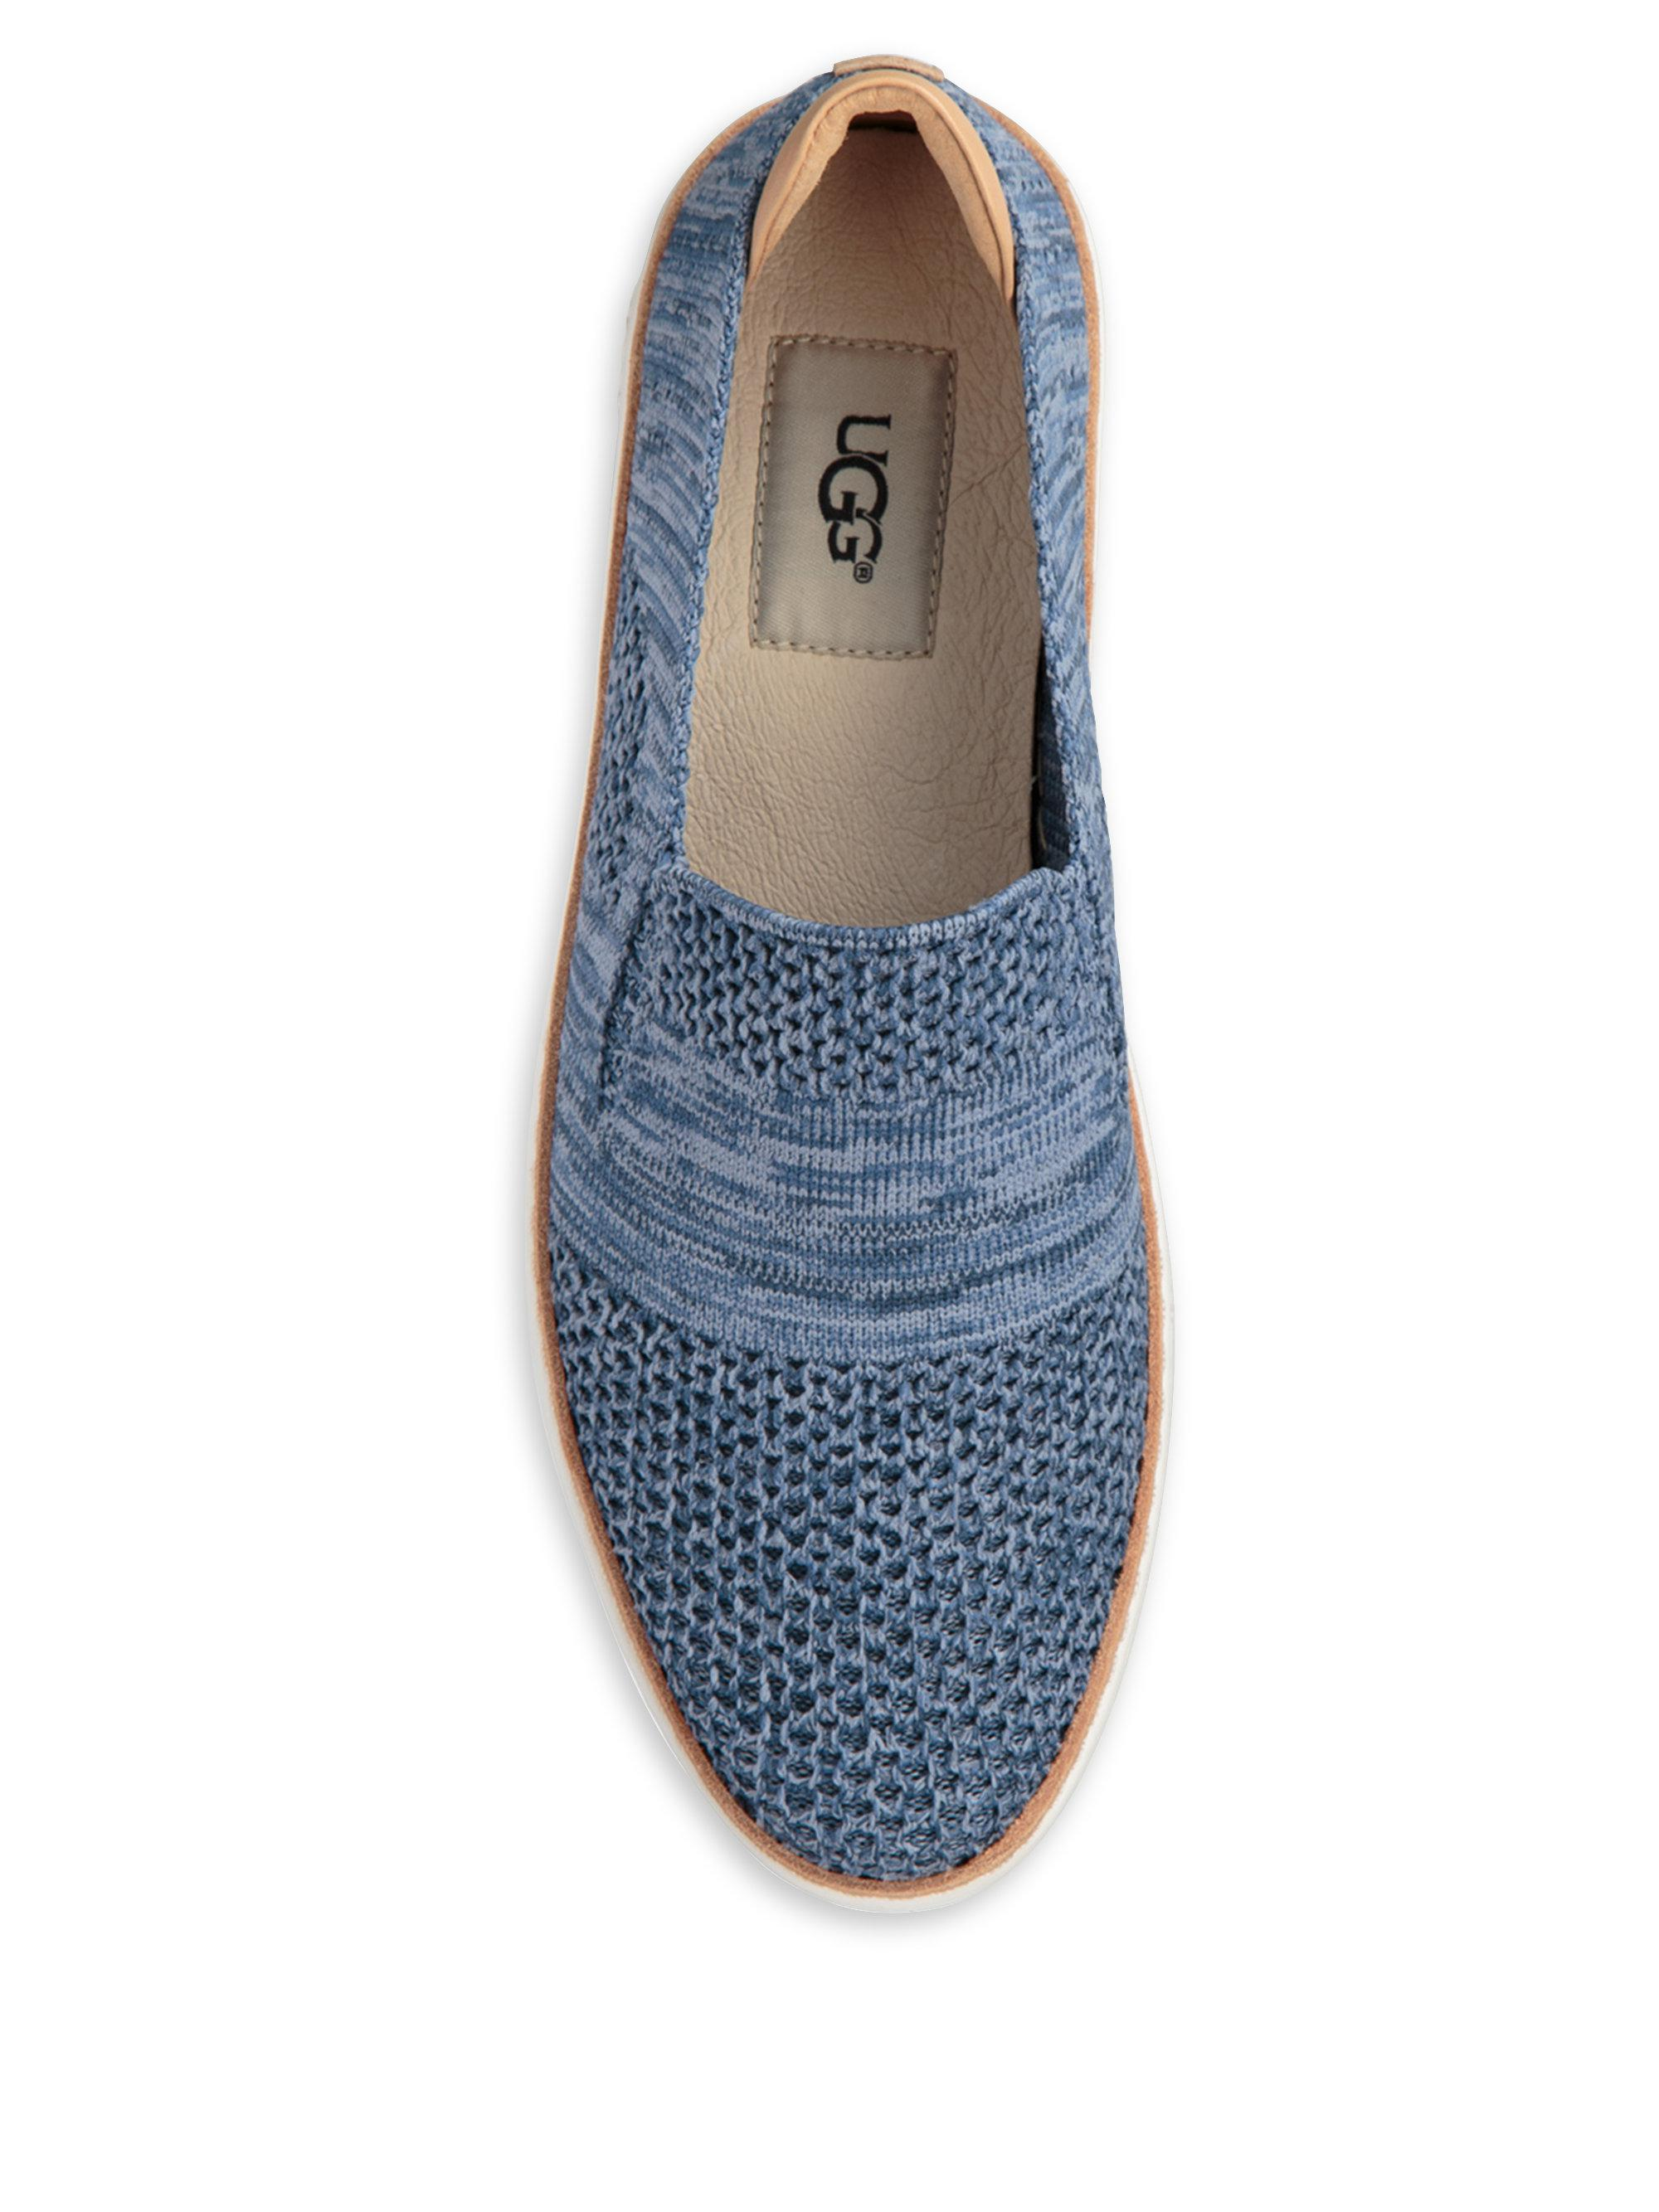 UGG Leather Sammy Slip-on Sneakers in